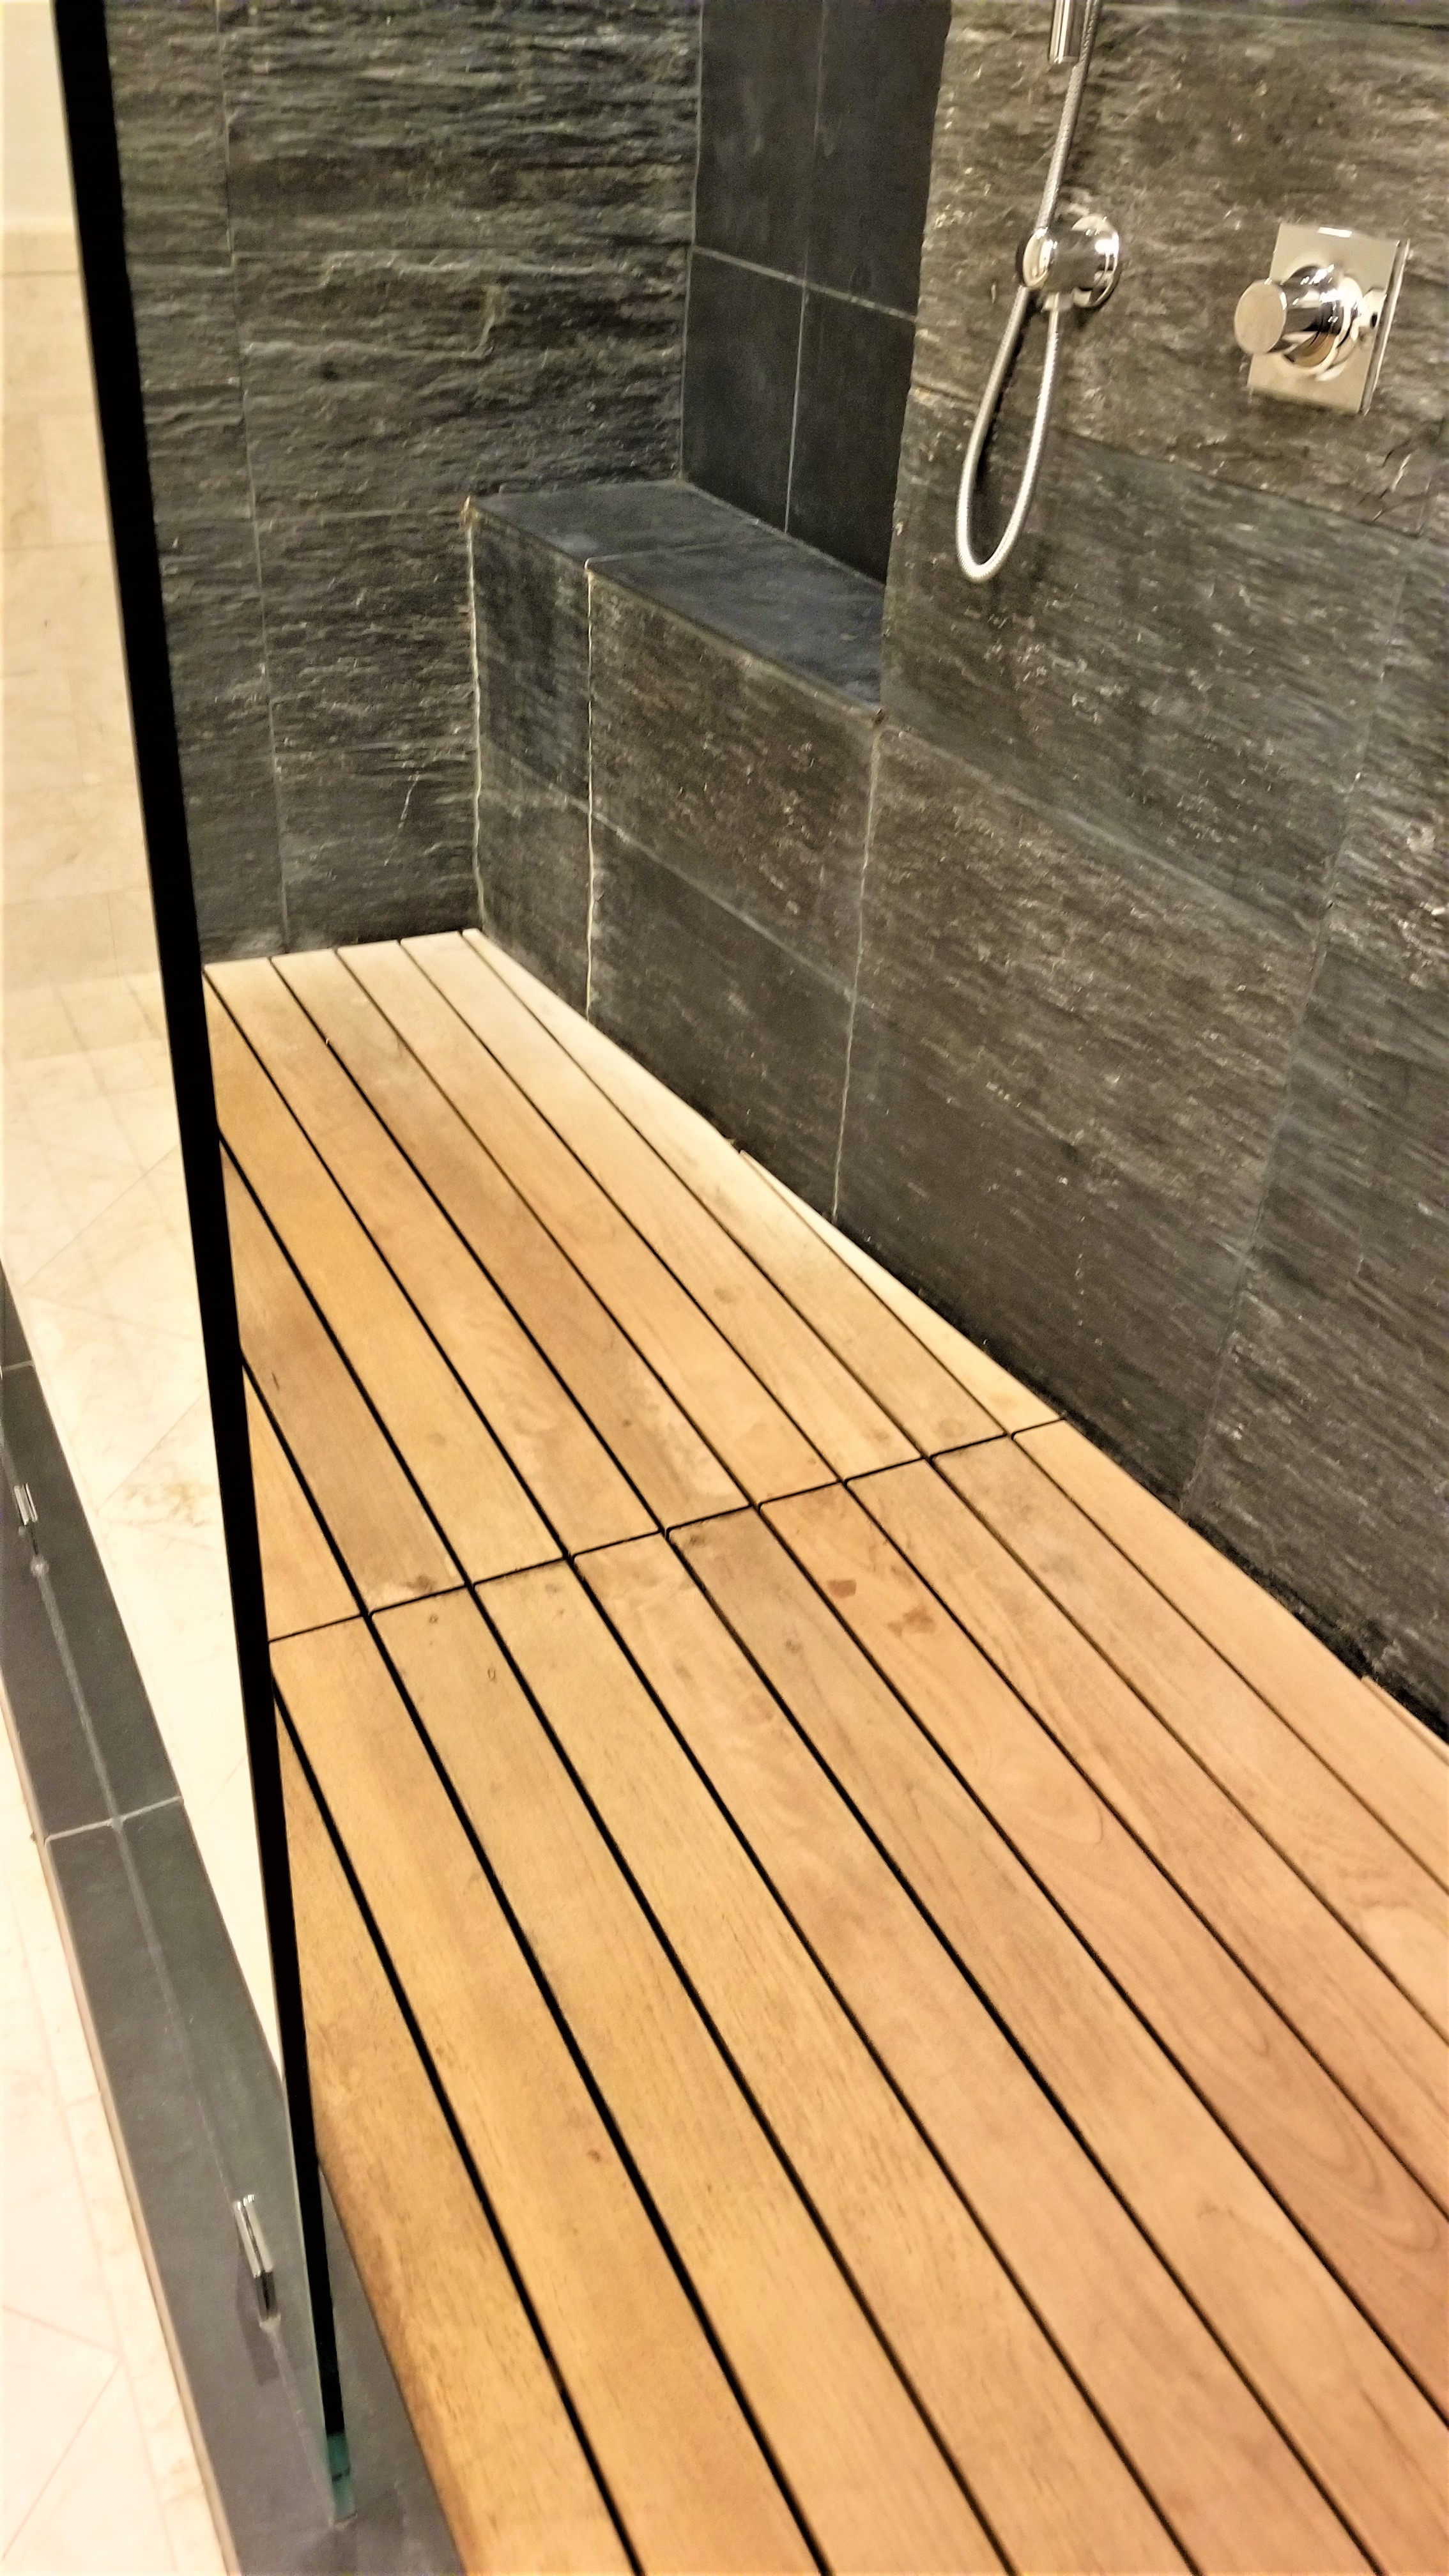 New Life For A Teak Wood Shower Floor The Larkin Painting Company